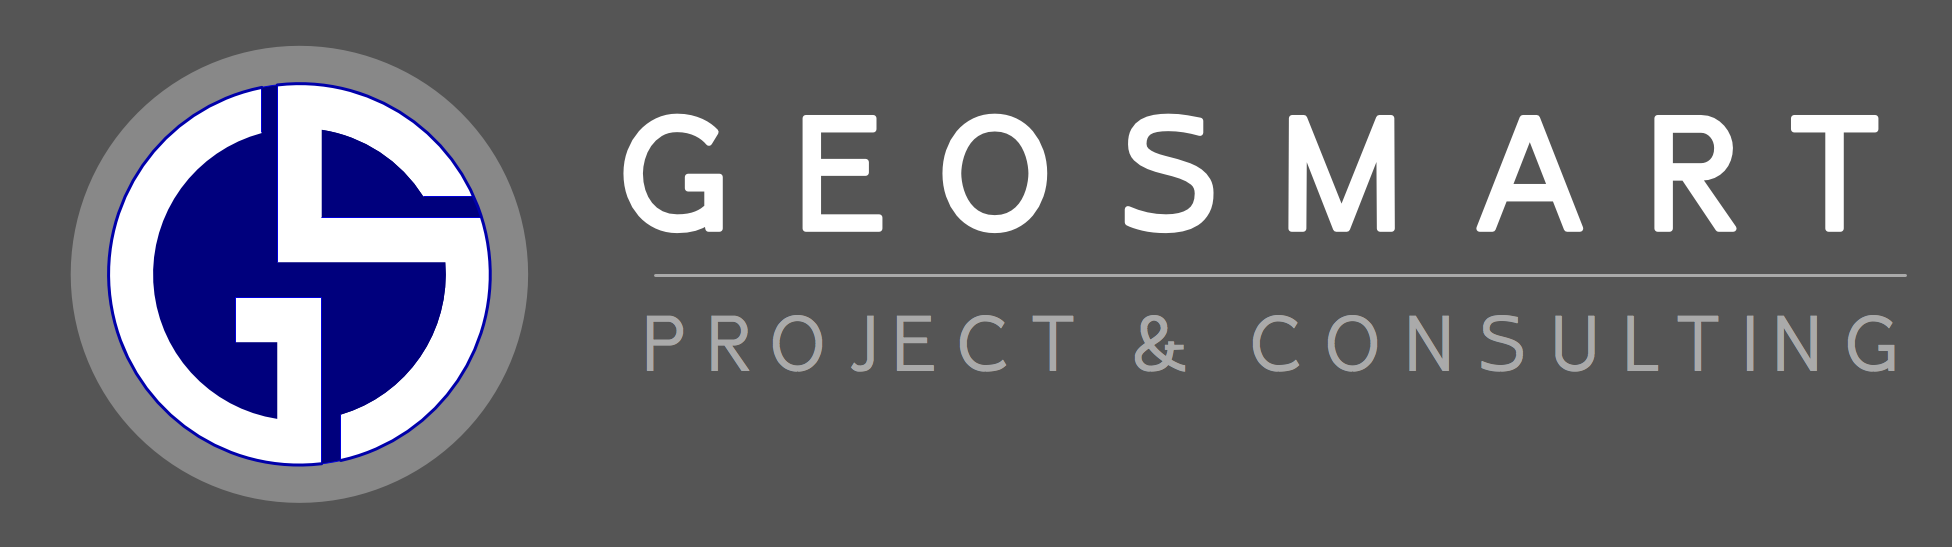 GEOSMART – PROJECT & CONSULTING